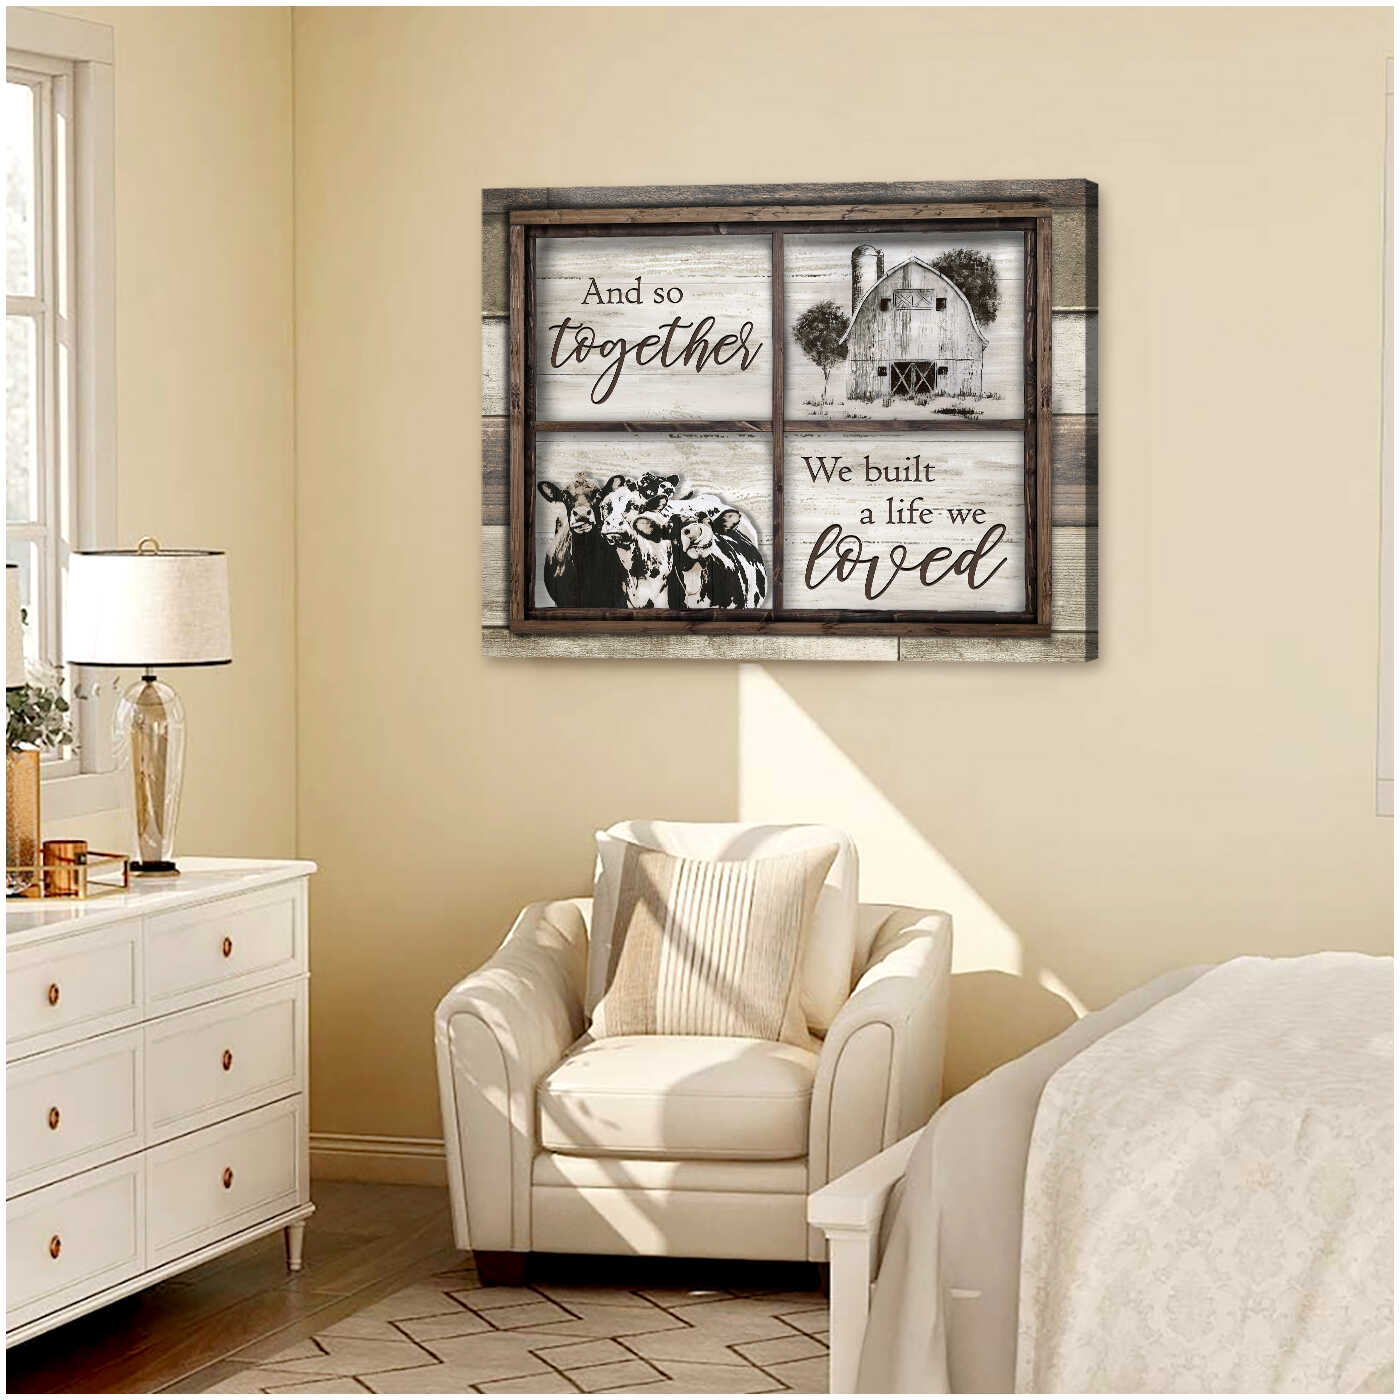 Ohcanvas Window Farm And Cows And So Together We Built A Life We Loved Farmhouse Canvas Wall Art Decor